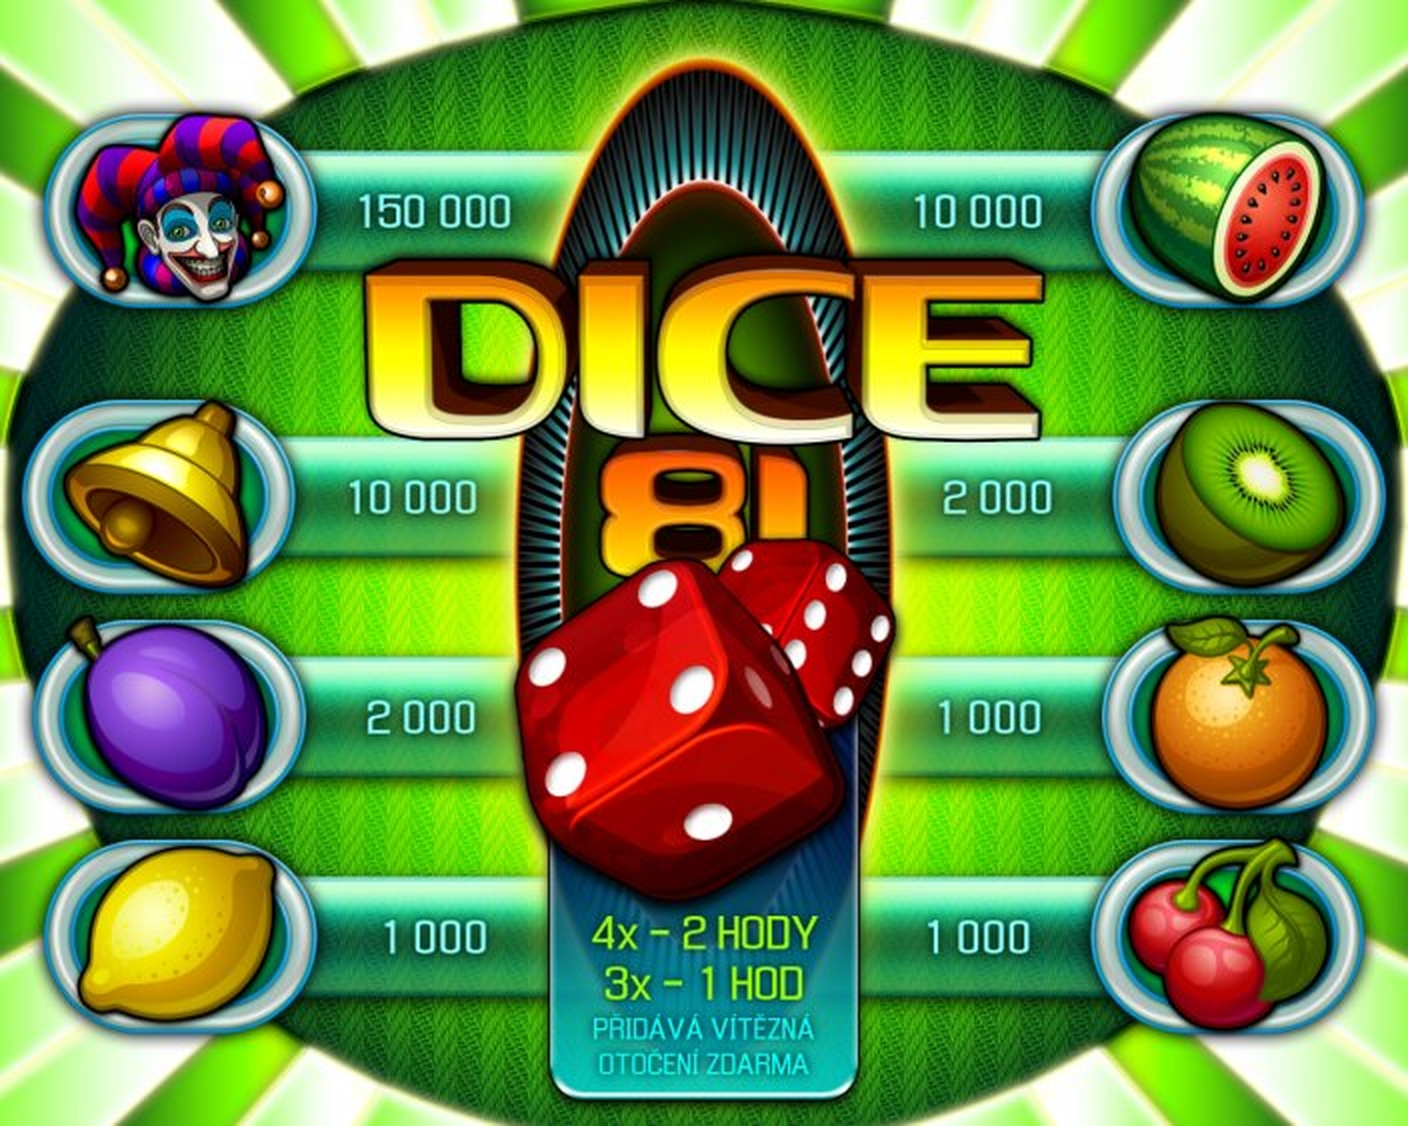 The Dice 81 Online Slot Demo Game by Apollo Games